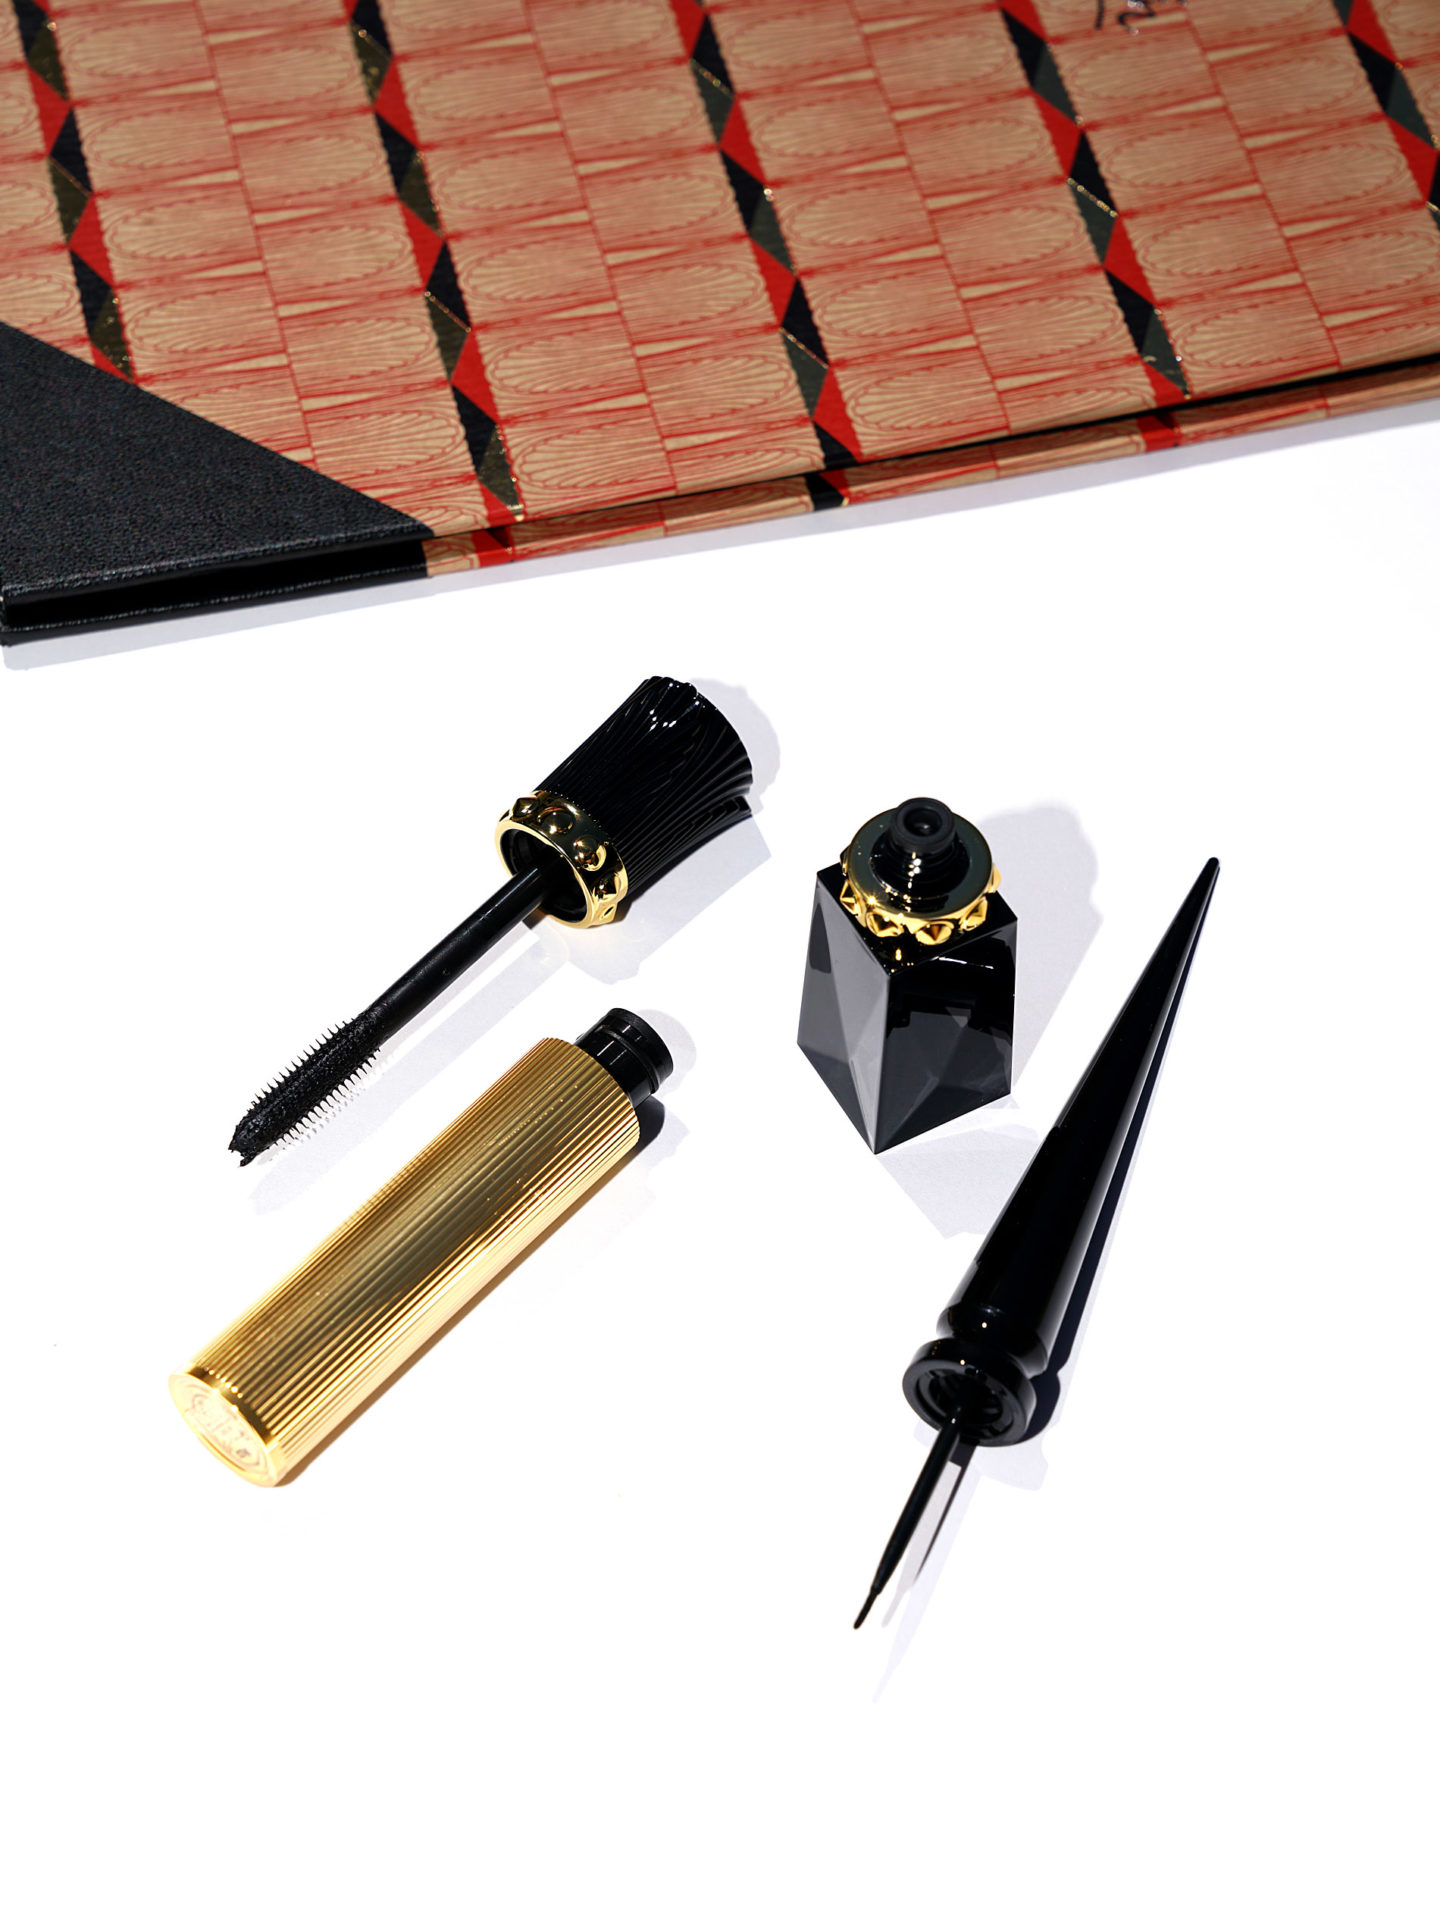 Louboutin Les Yeux Mascara and Oeil Vinyle Luminous Ink Liner | The Beauty Look Book